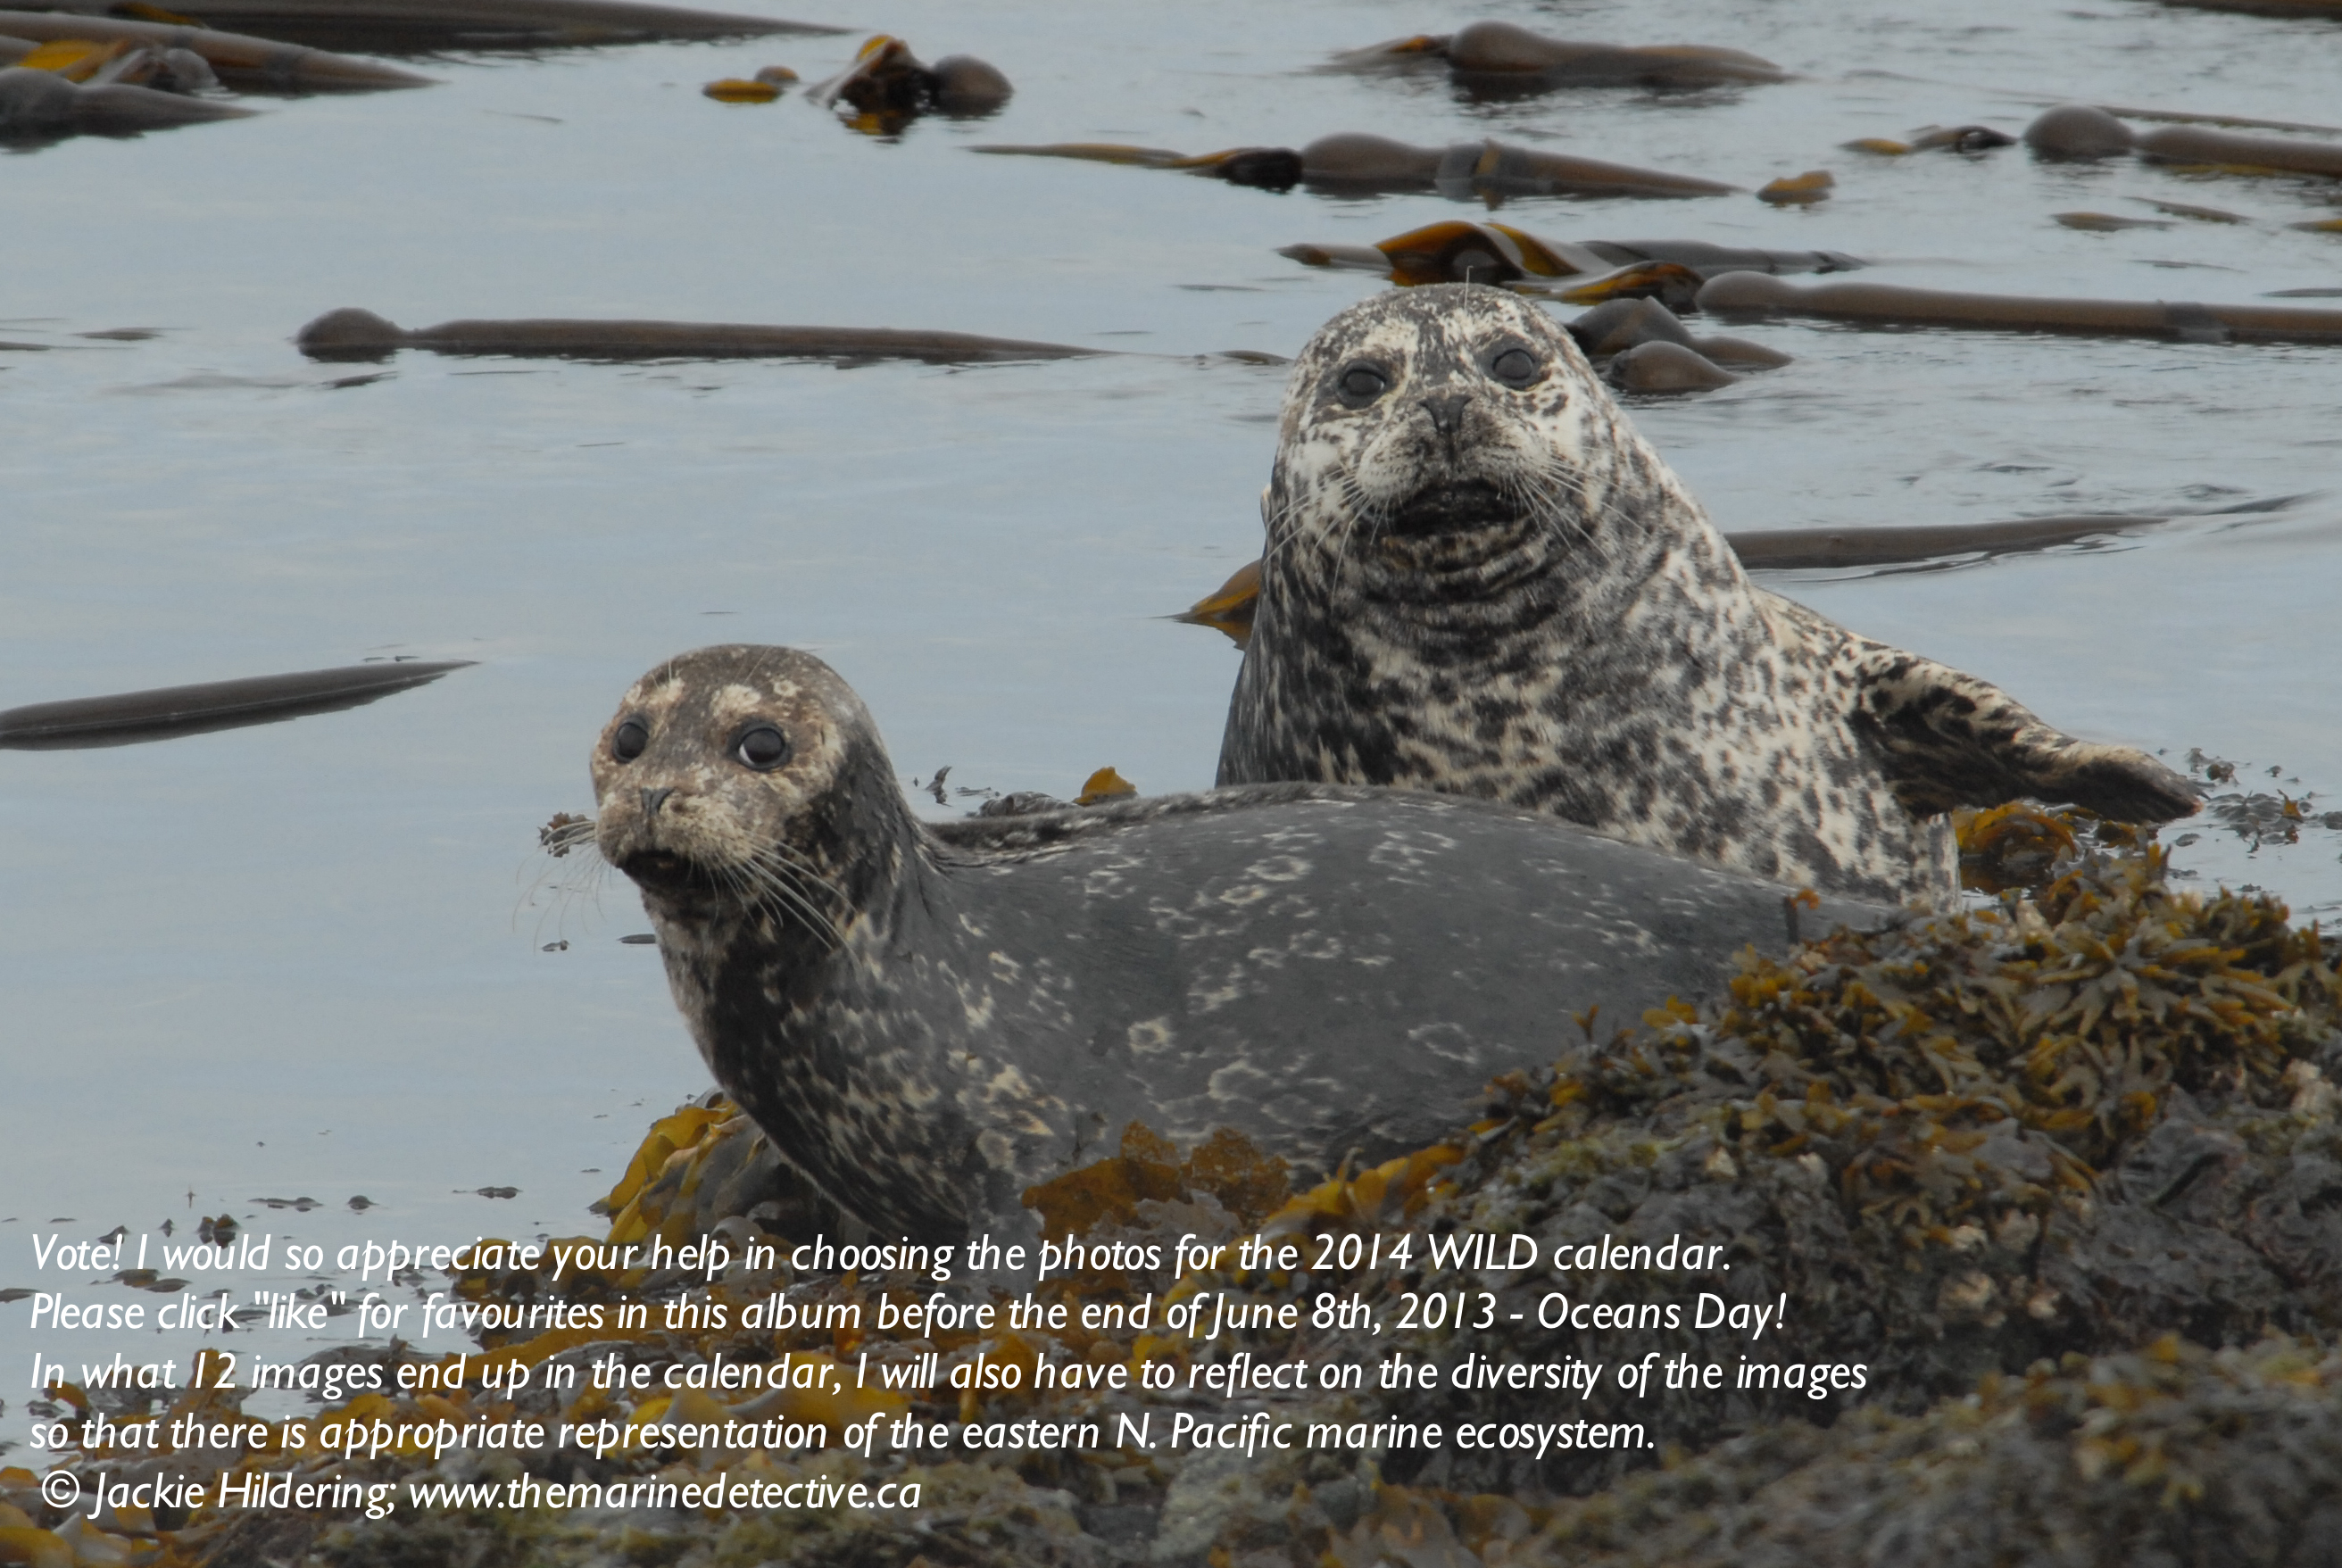 The environmental issues of the steller sea lions